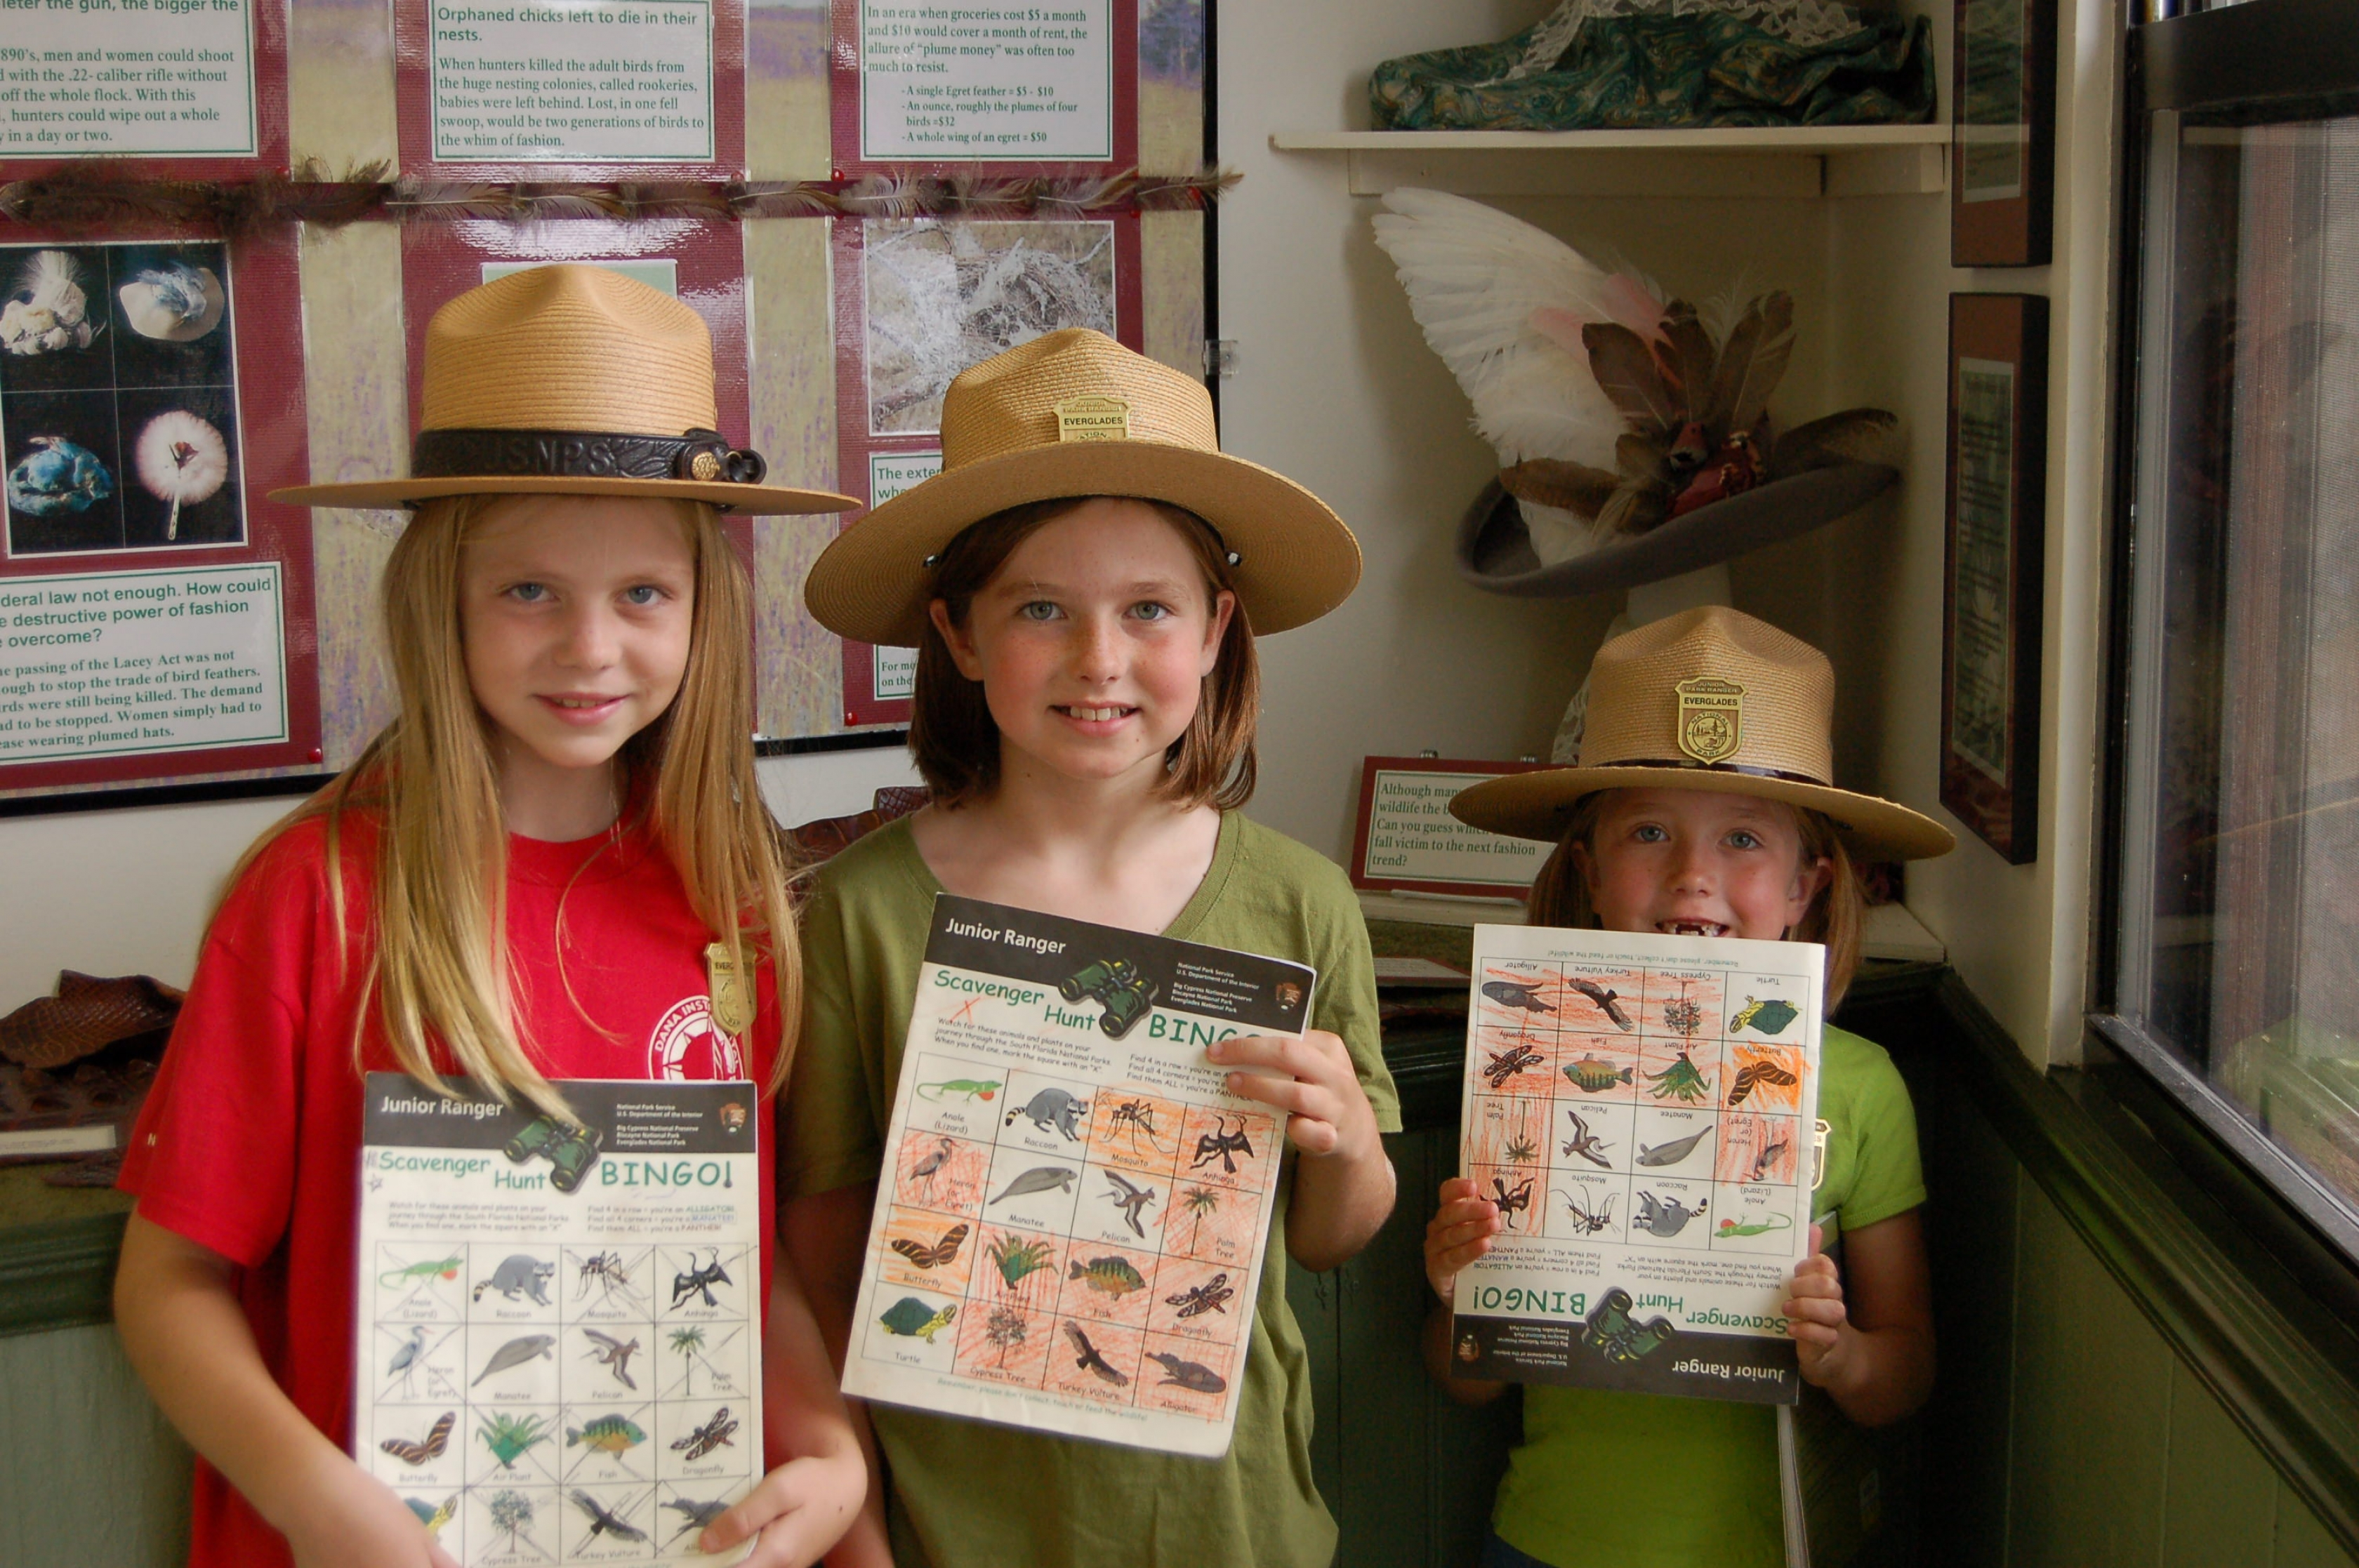 Three kids enjoy becoming junior rangers at Everglades National Park.